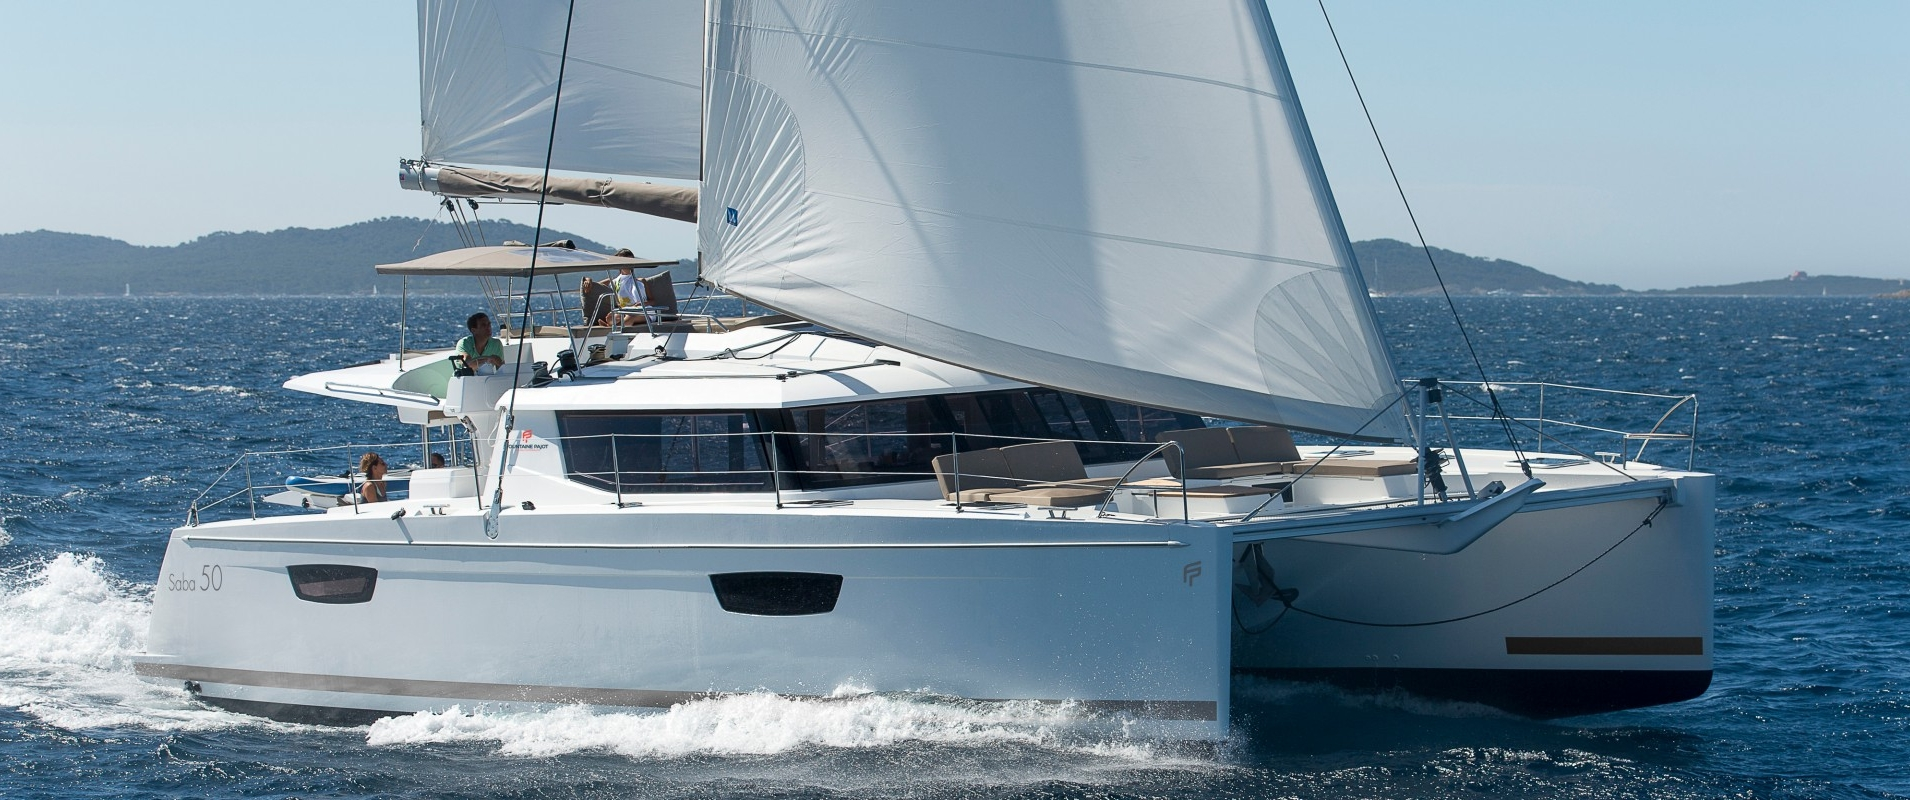 Segel katamaran kaufen  Catamaran Sailboat Saba 50 - Fountaine Pajot